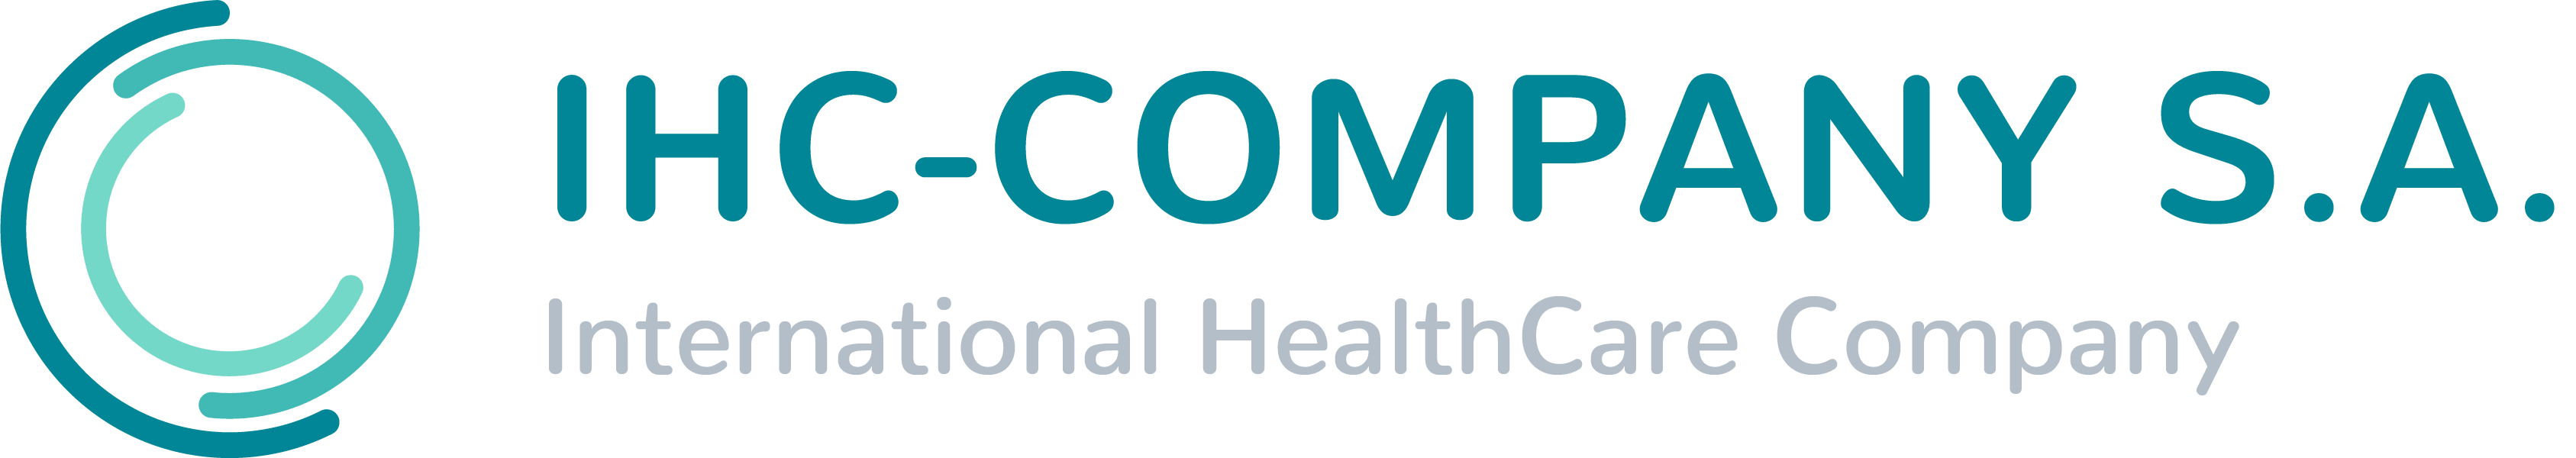 International HealthCare Company